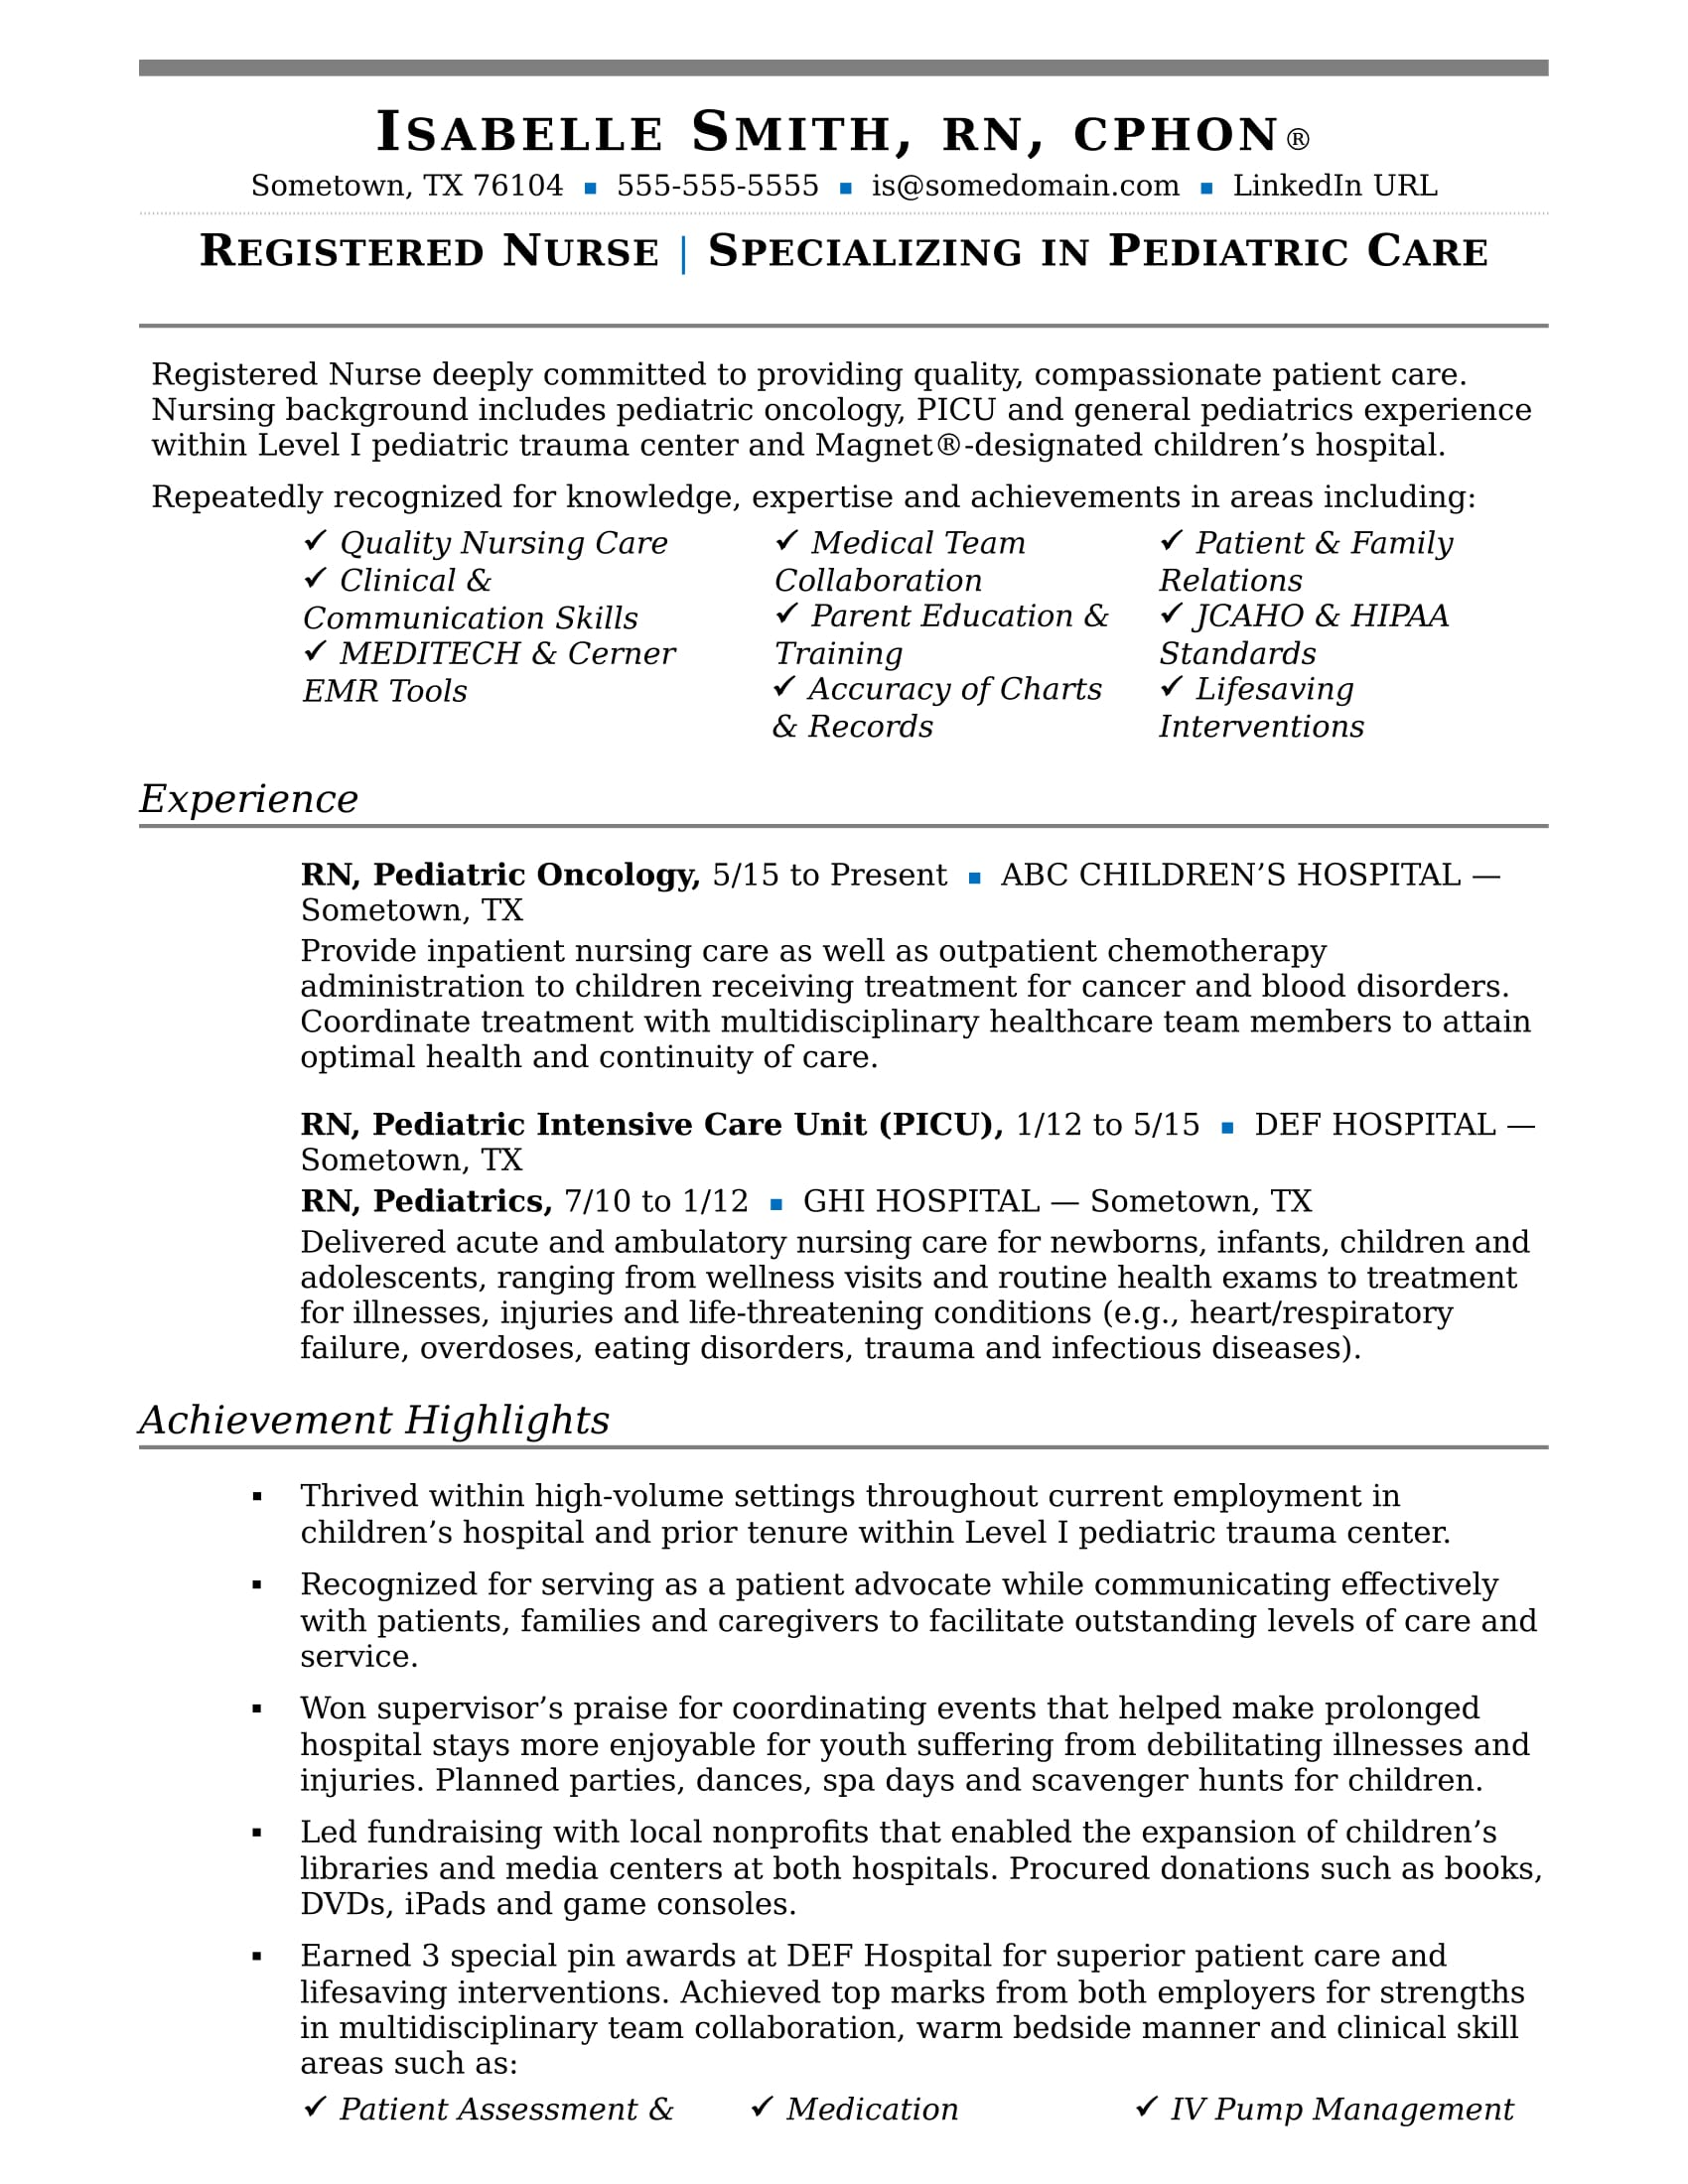 nurse resume sample monster mock interview samples good objectives for office positions Resume Mock Interview Resume Samples